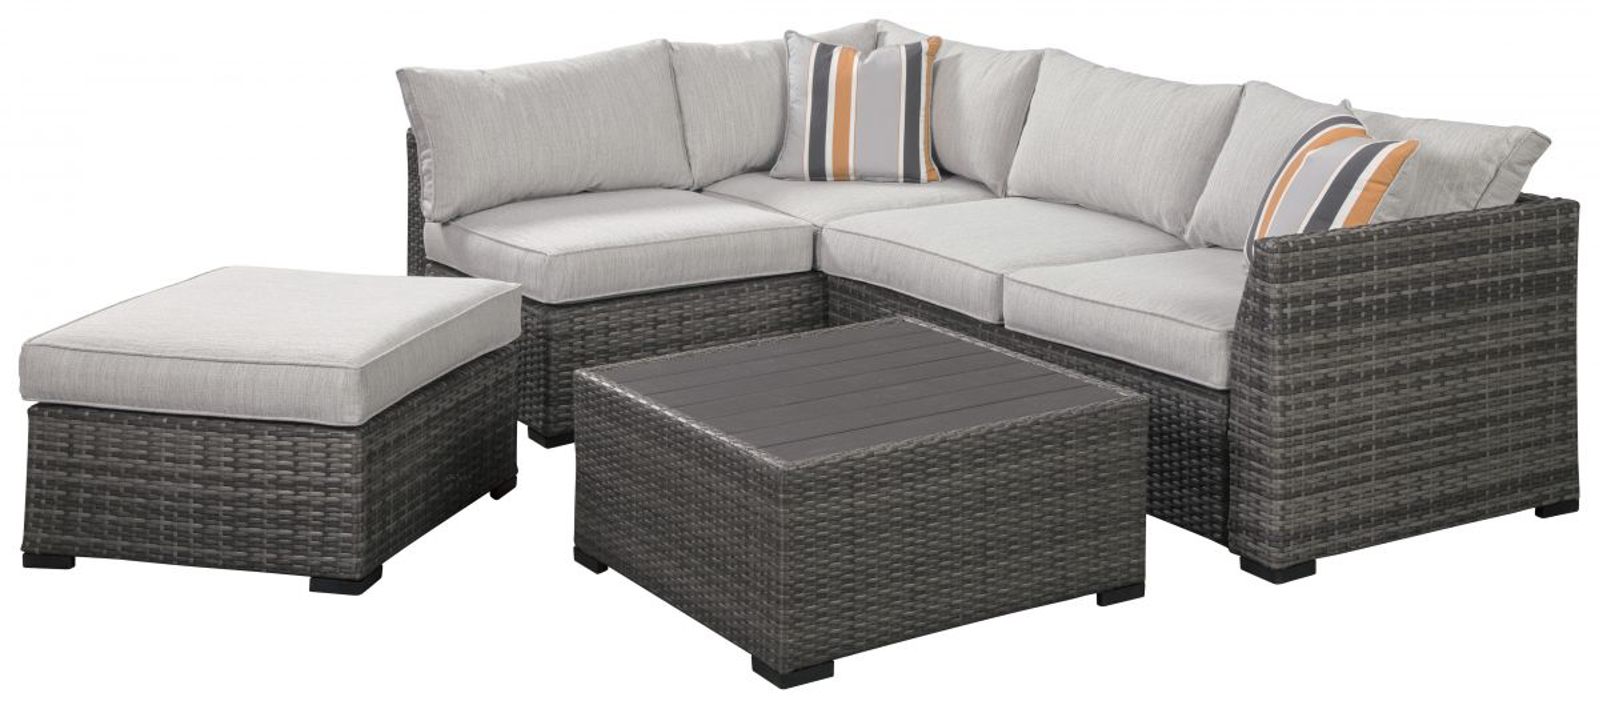 Picture of Cherry Point Patio Sectional, Ottoman & Table